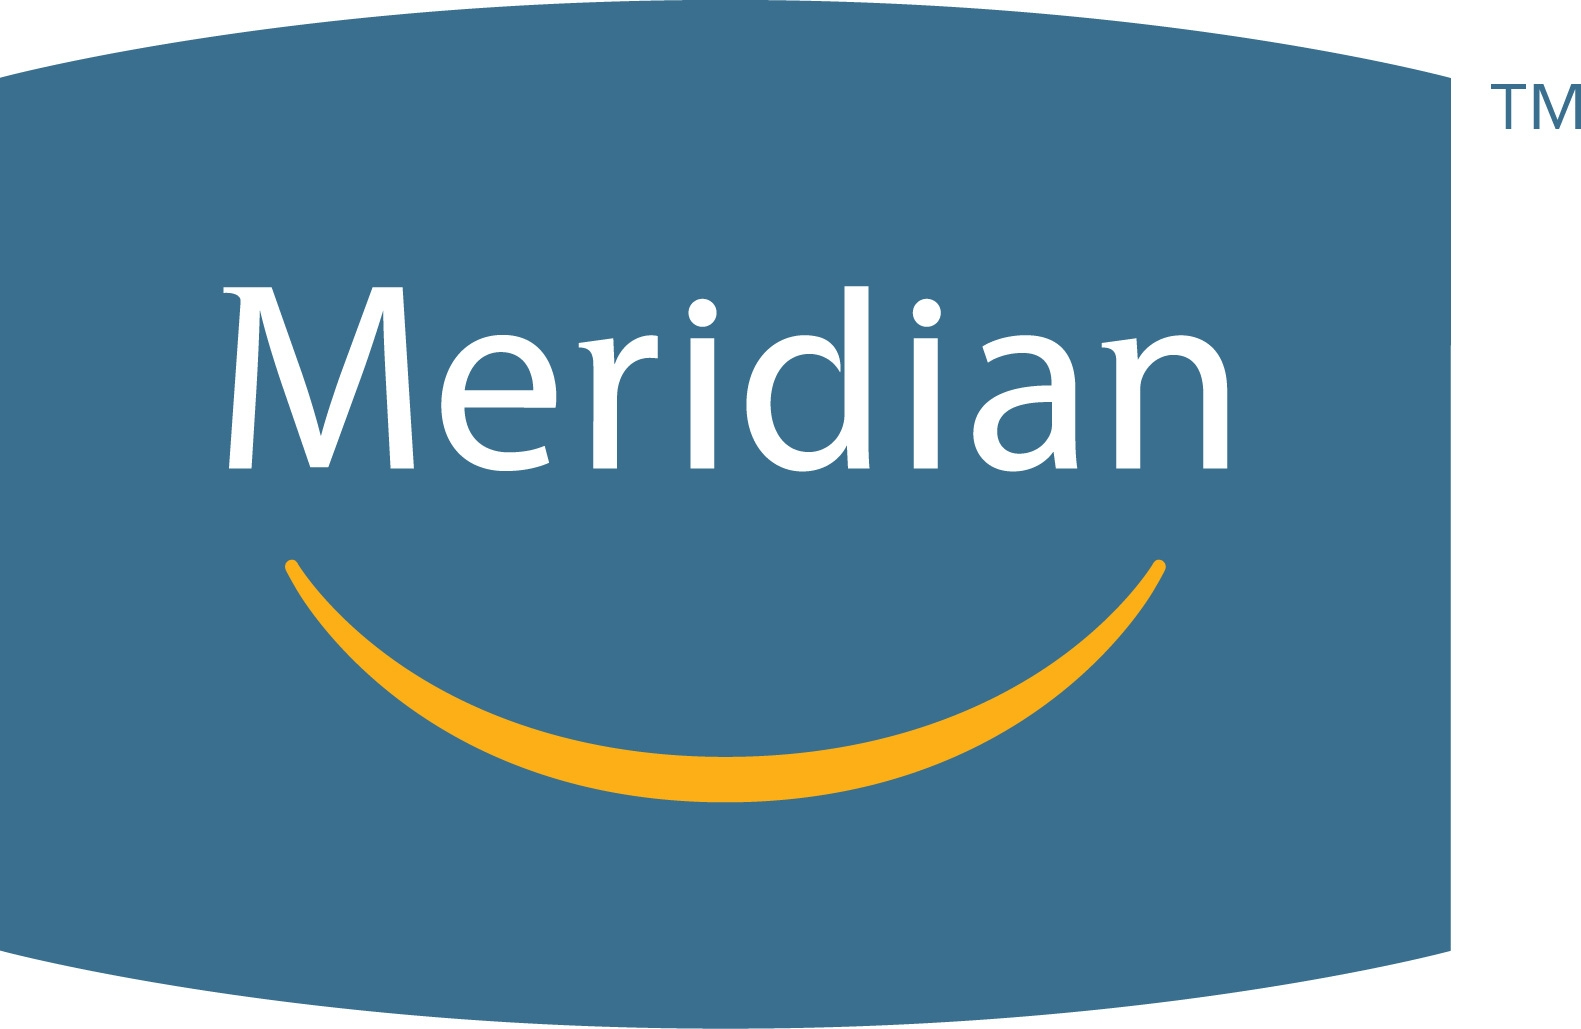 logo for Meridian Credit Union